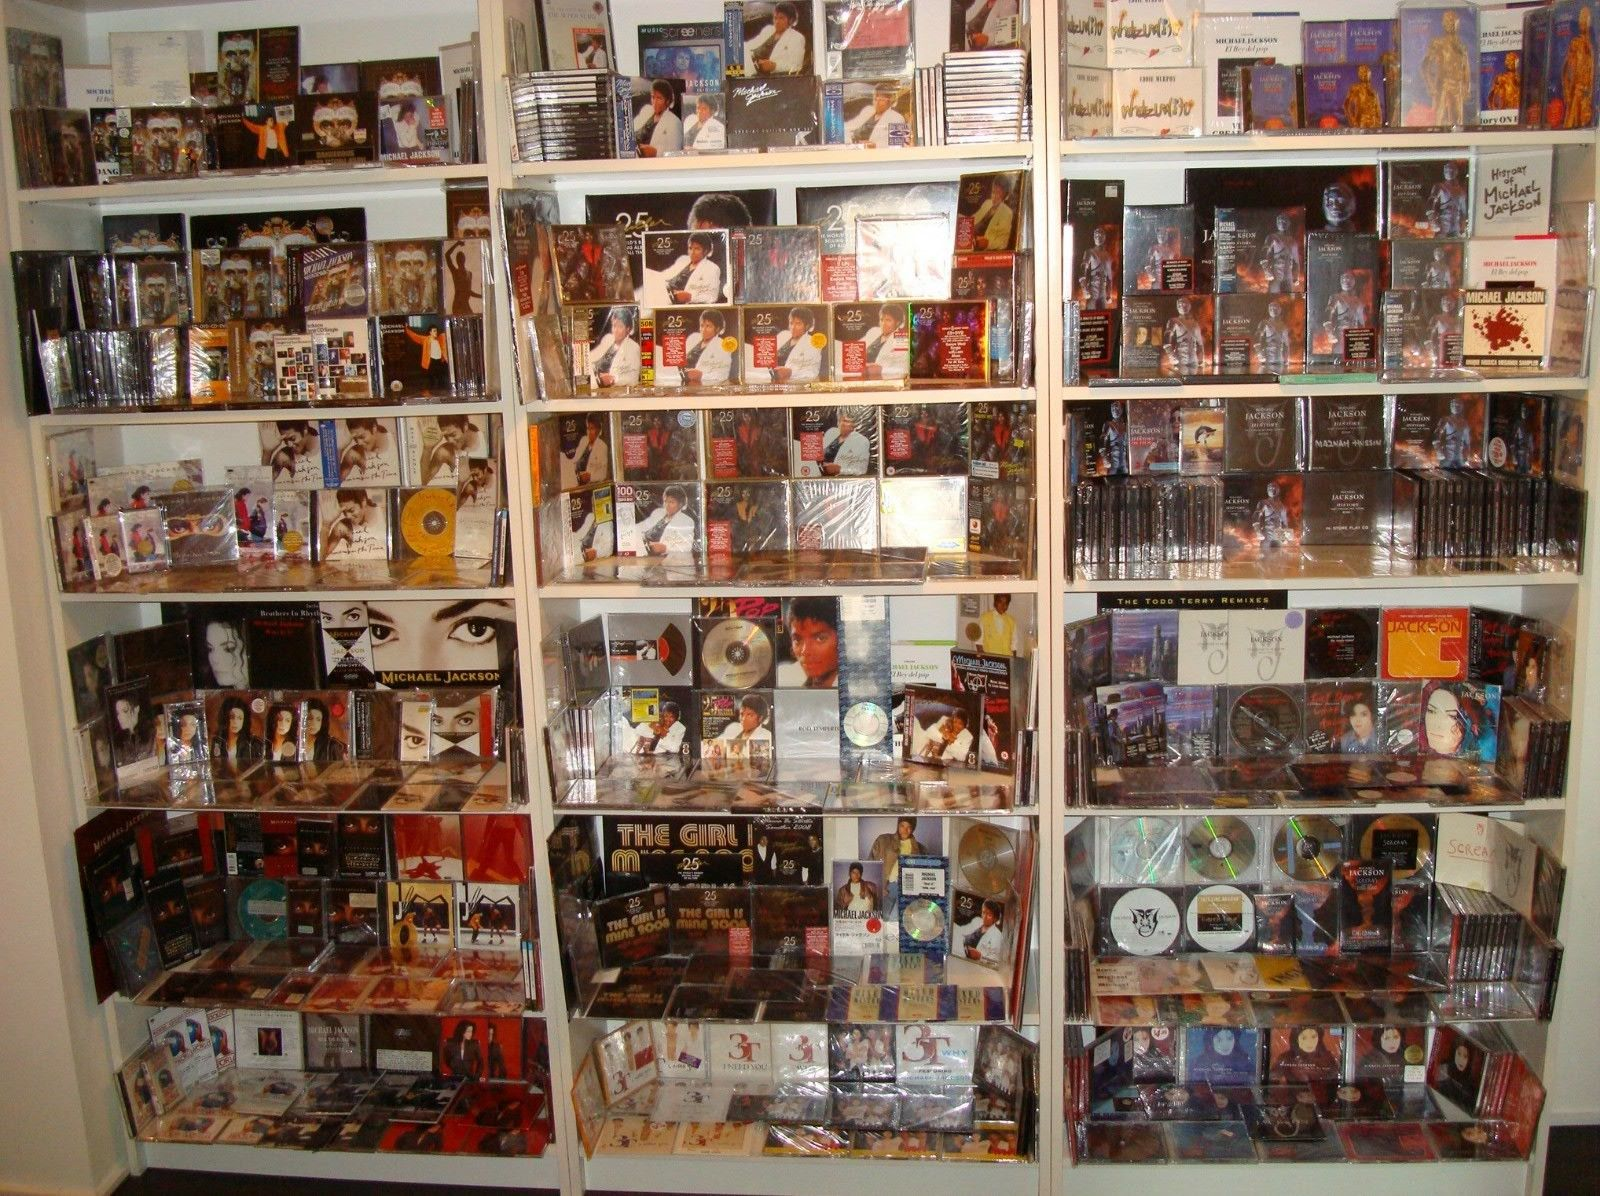 Michael Jackson Ultimate Collection: Most Expensive Collections You Can Buy On Ebay